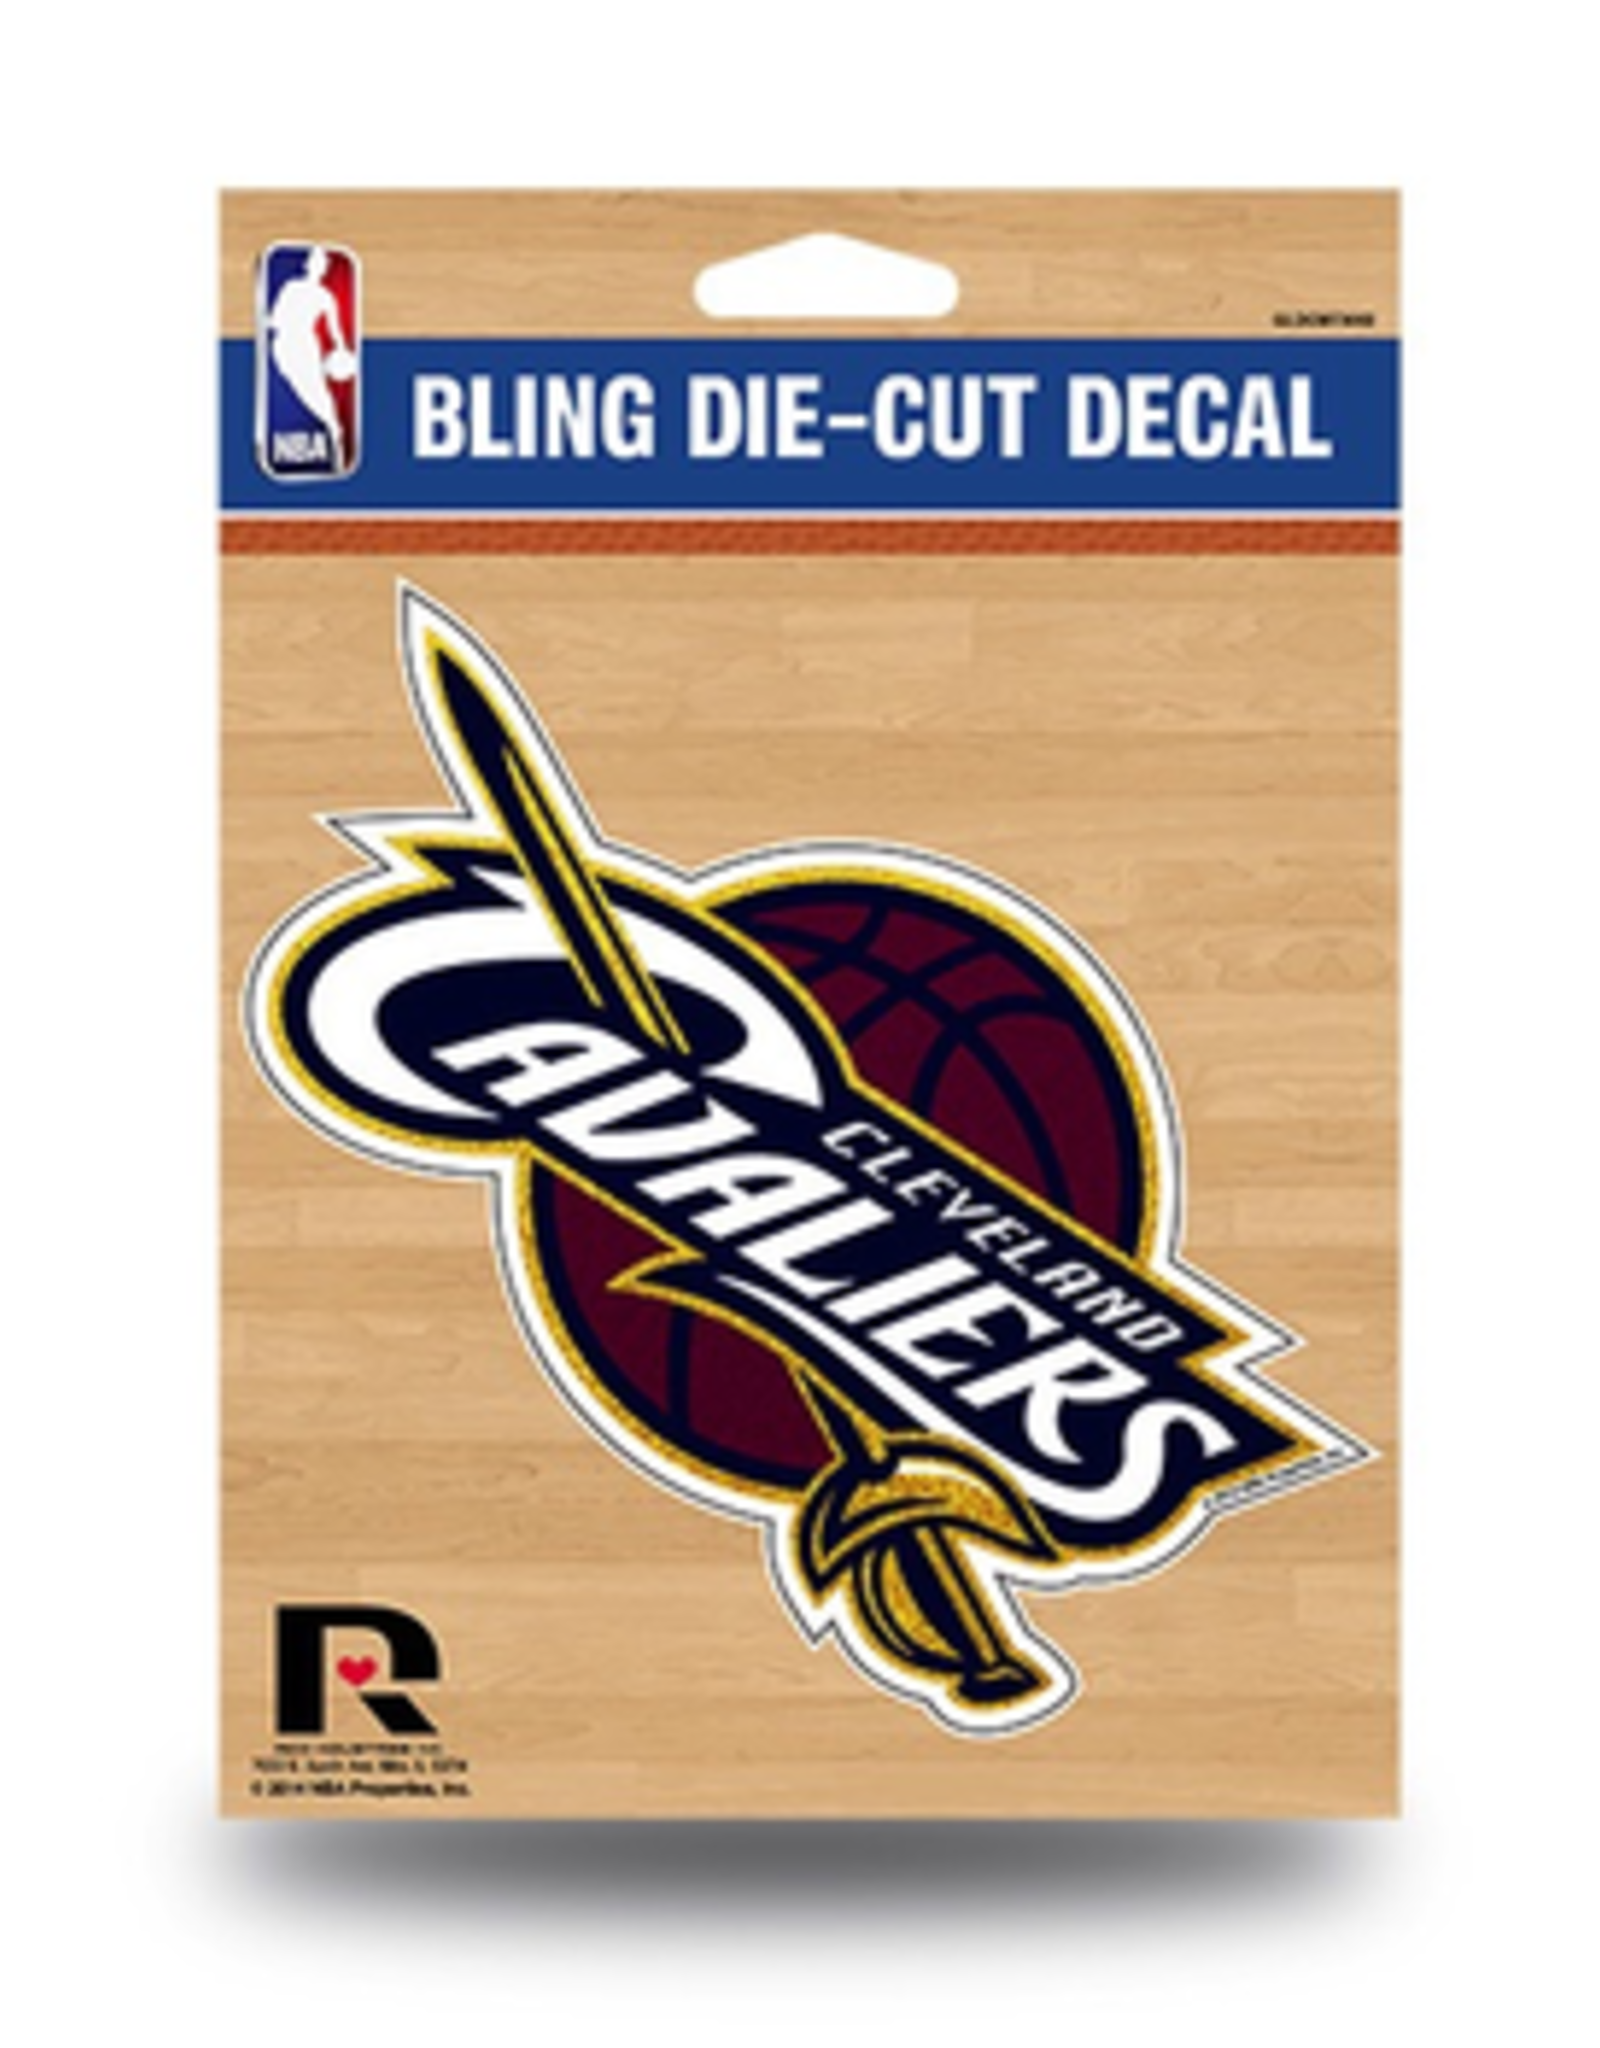 RICO INDUSTRIES Cleveland Cavliers Die Cut Bling Decal